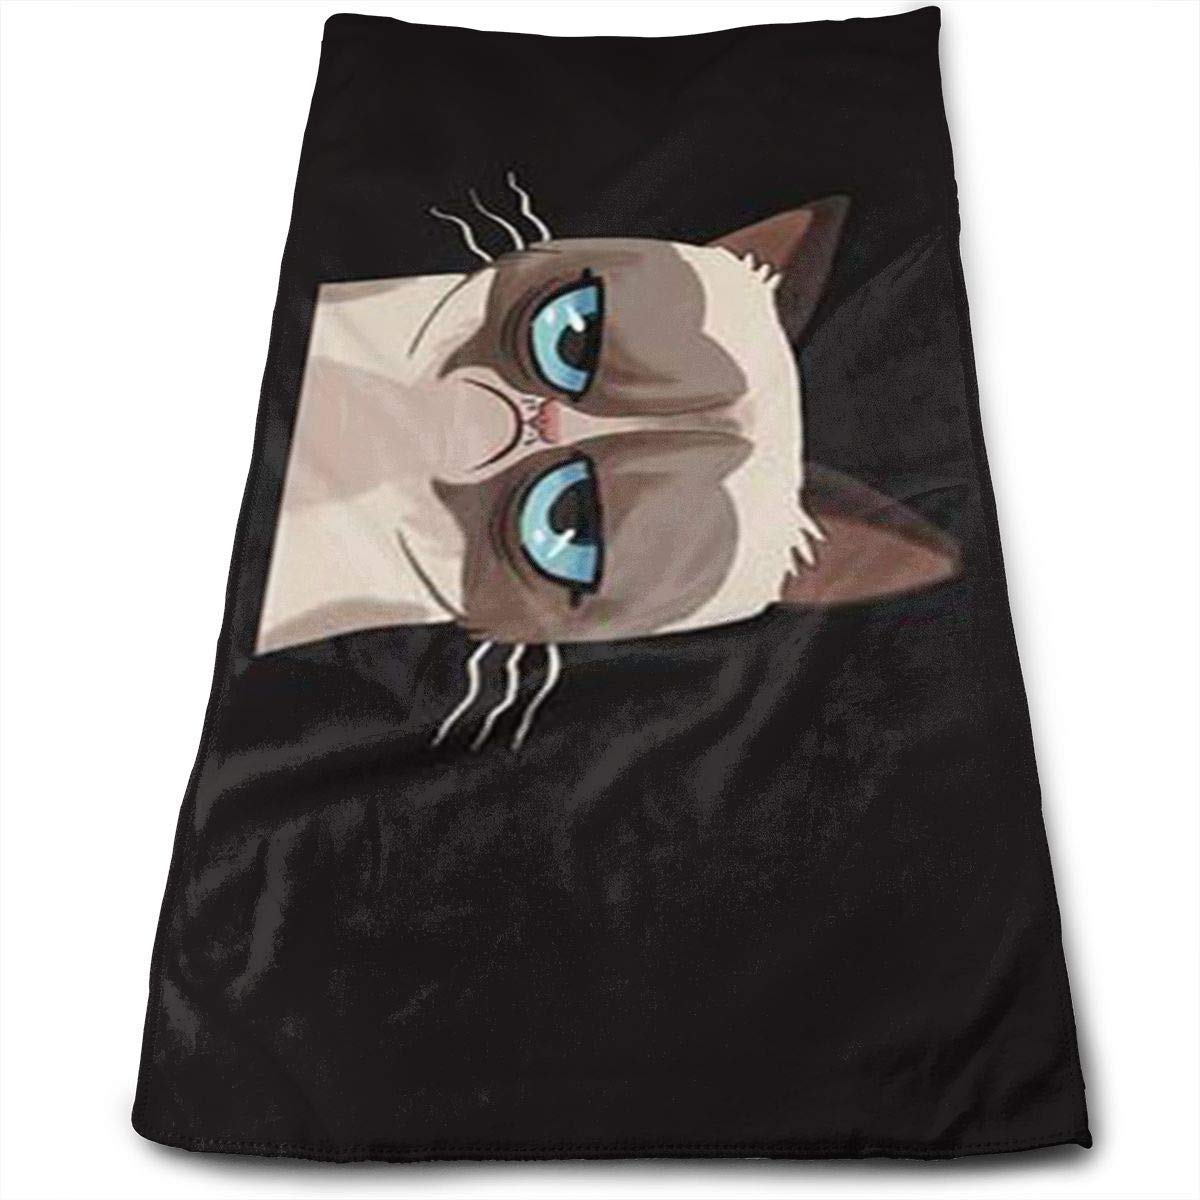 Grumpy Cat 100% Cotton, Fade Resistant, Highly Absorbent, Machine Washable, Hotel Quality, Soft Absorbent Towel best bags